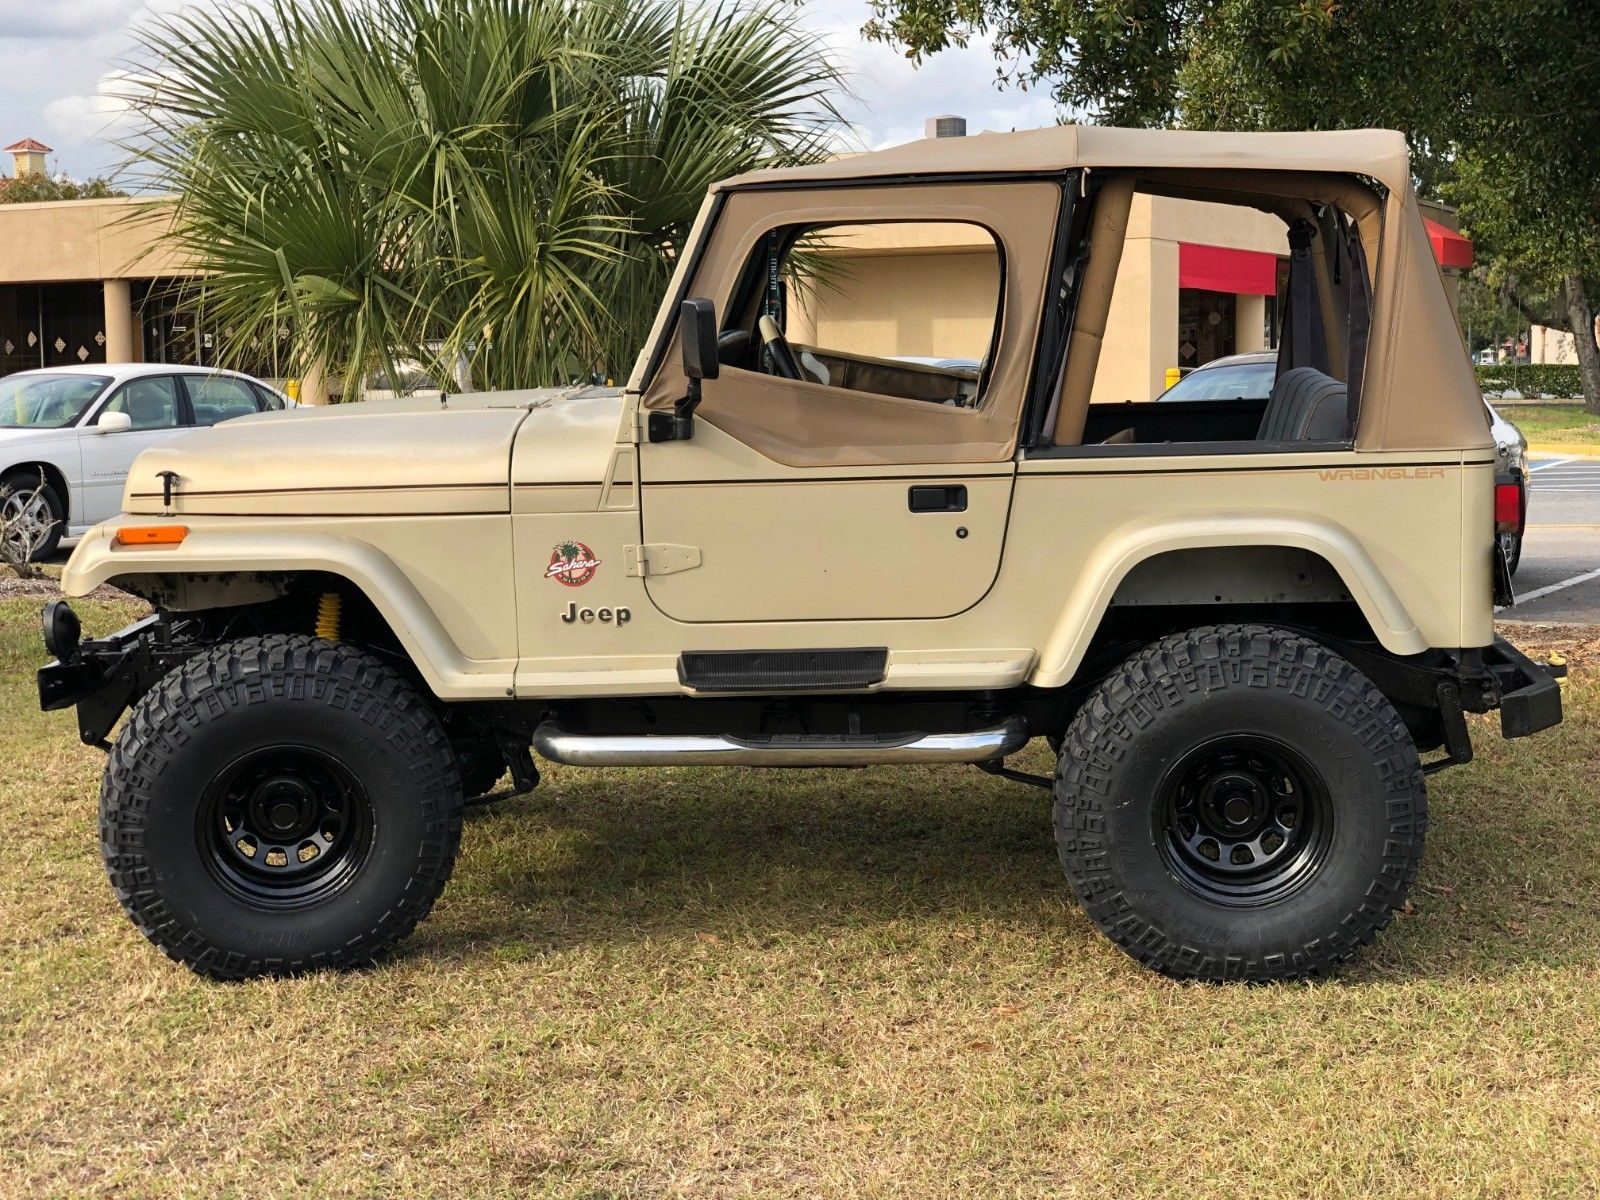 hight resolution of jeep wrangler yj awesome 1992 jeep wrangler sahara edition 1992 amc jeep wrangler yj